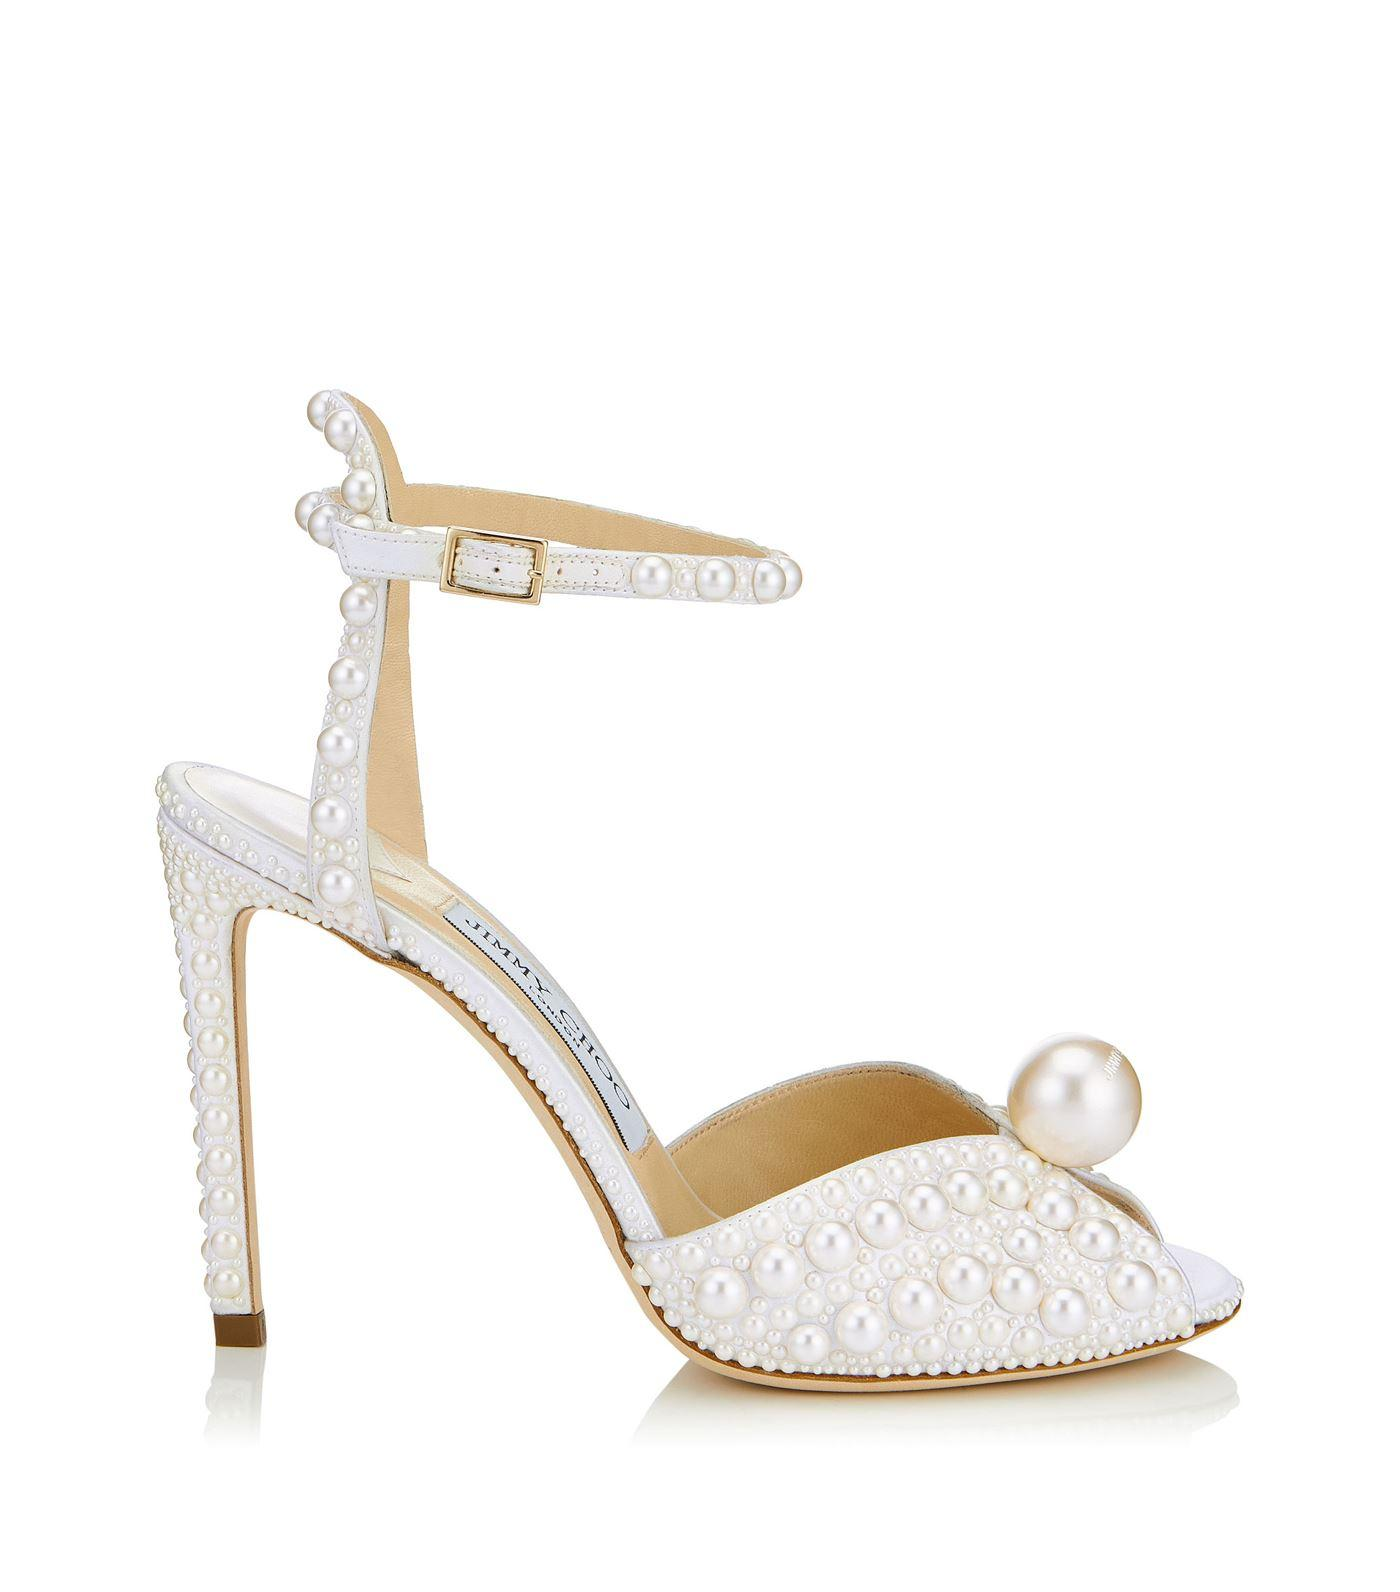 89cdf349d680 Jimmy Choo Sacora 100 Satin Pearl Sandals in White - Lyst